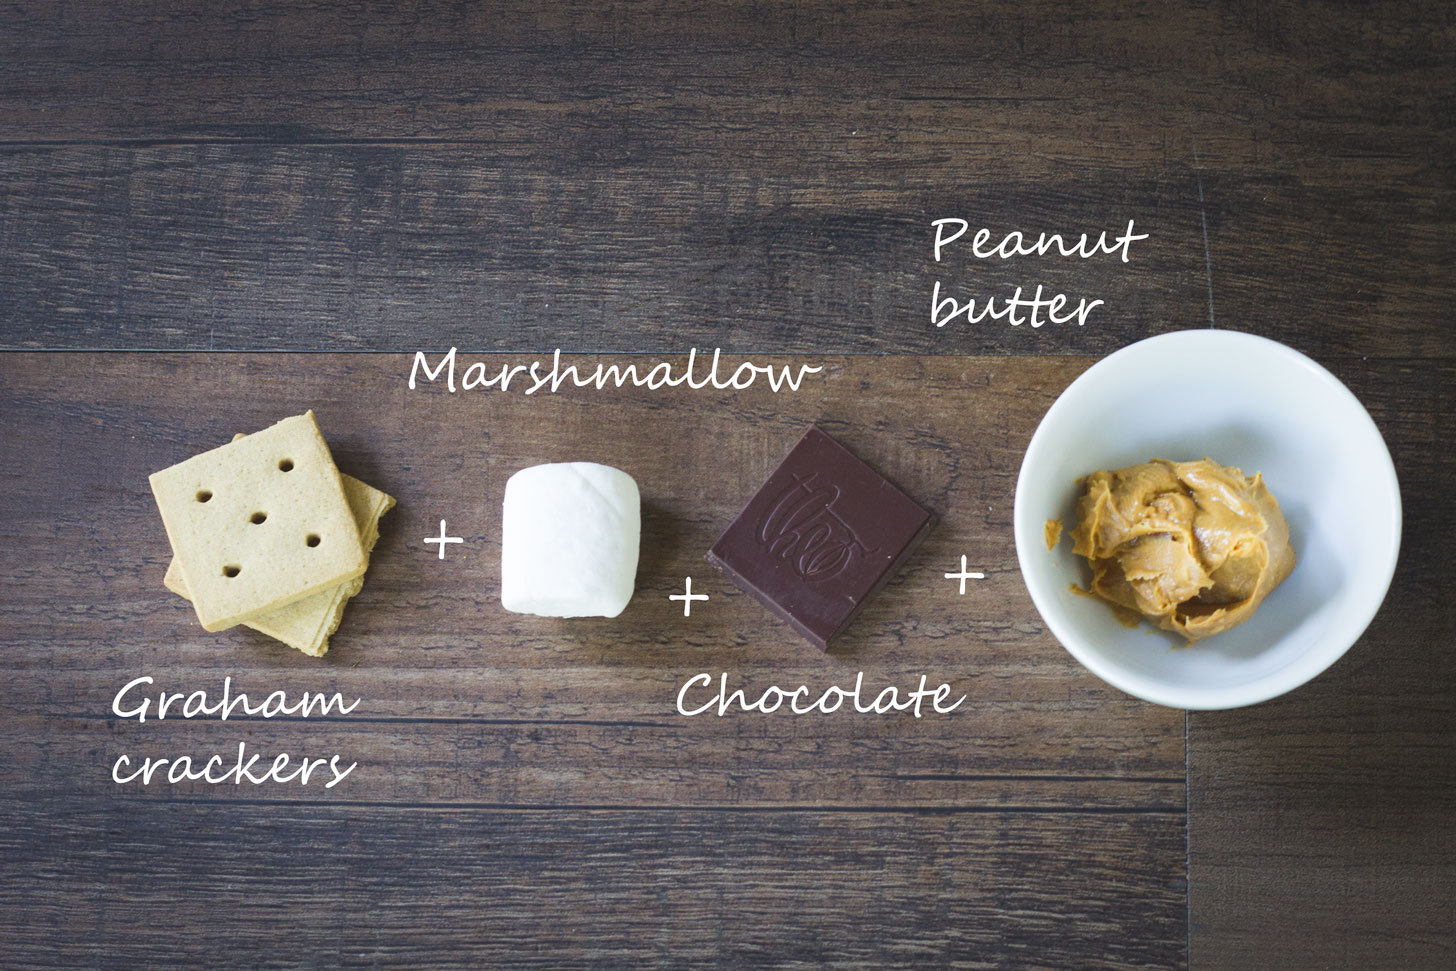 Graham crackers, marshmallow, chocolate, and peanut butter.